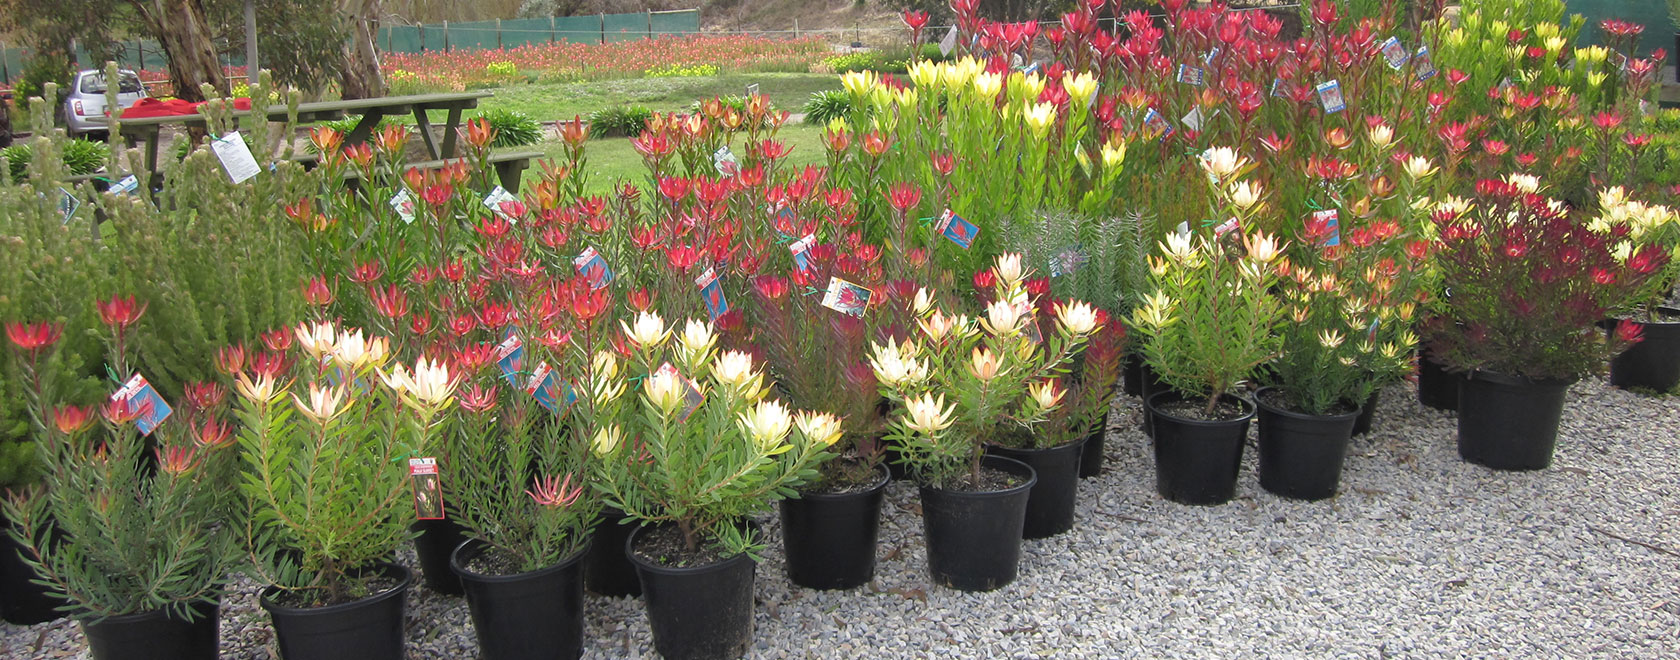 Protea world protea plants online and nursery protea for Plants to grow in garden